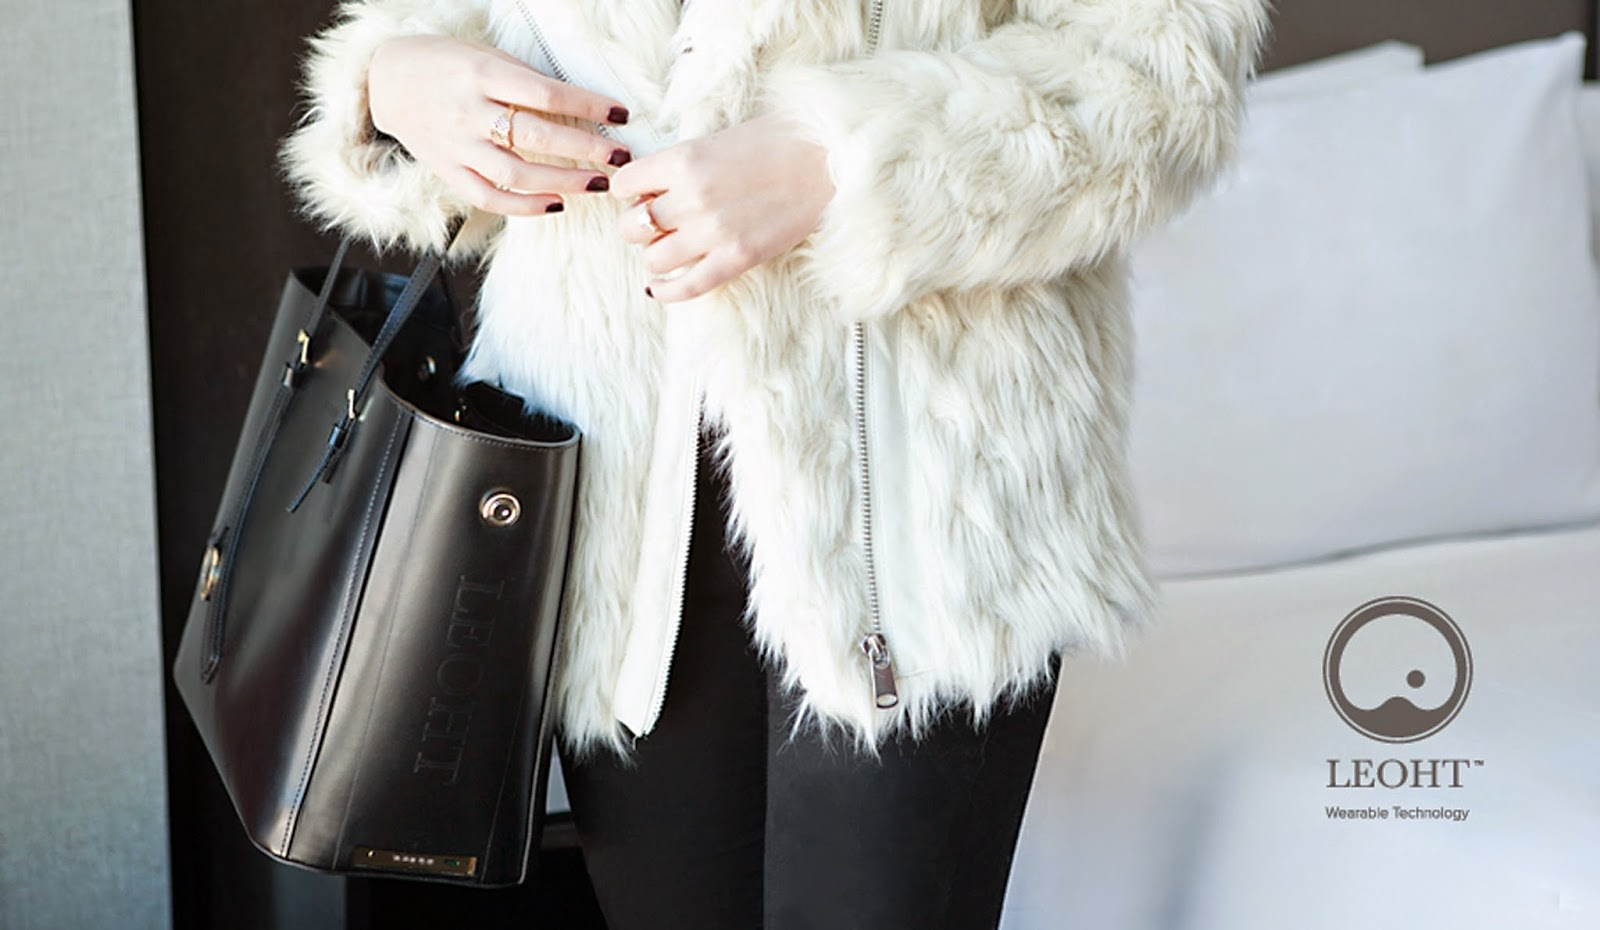 Leoht_Wearable Tech Handbag.jpg